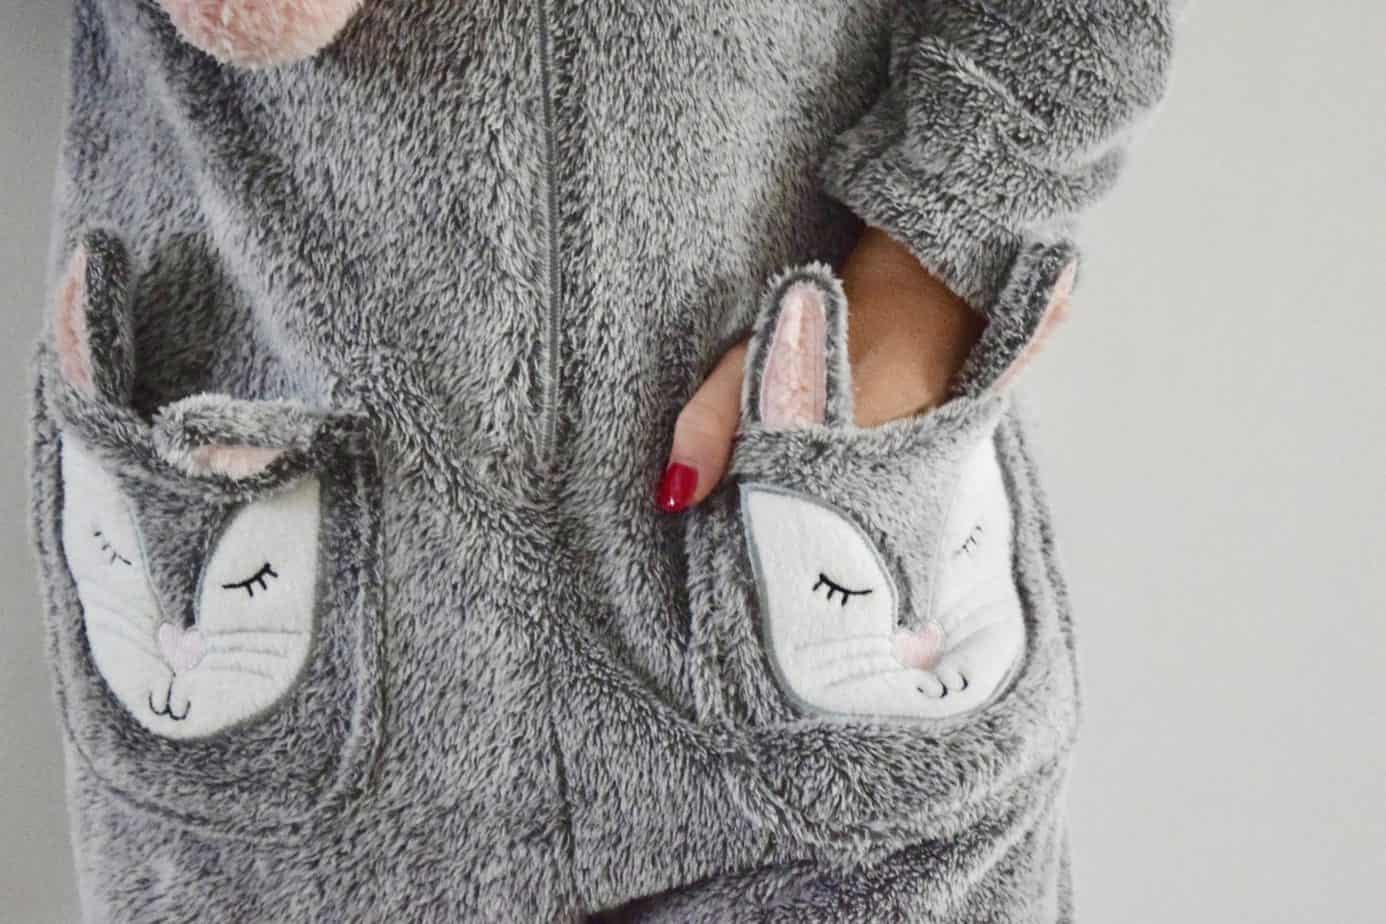 a close up of my hand in the rabbit pocket - onesie by Hunkemoller